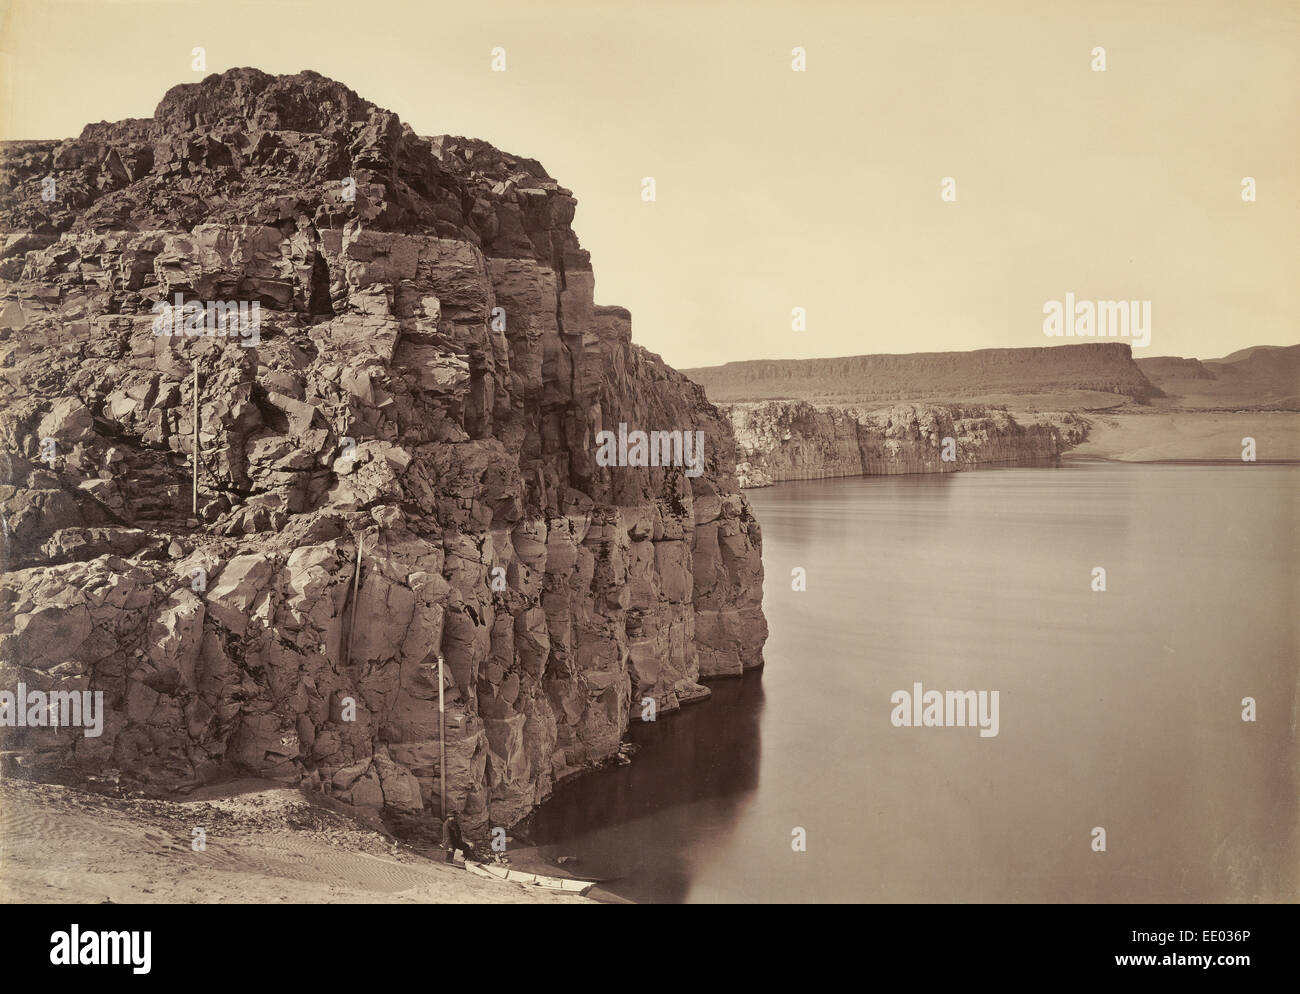 [The Dalles, Extremes of High & Low Water, 92 ft.] / [Head of the Dalles, Columbia River, Oregon]; Carleton - Stock Image